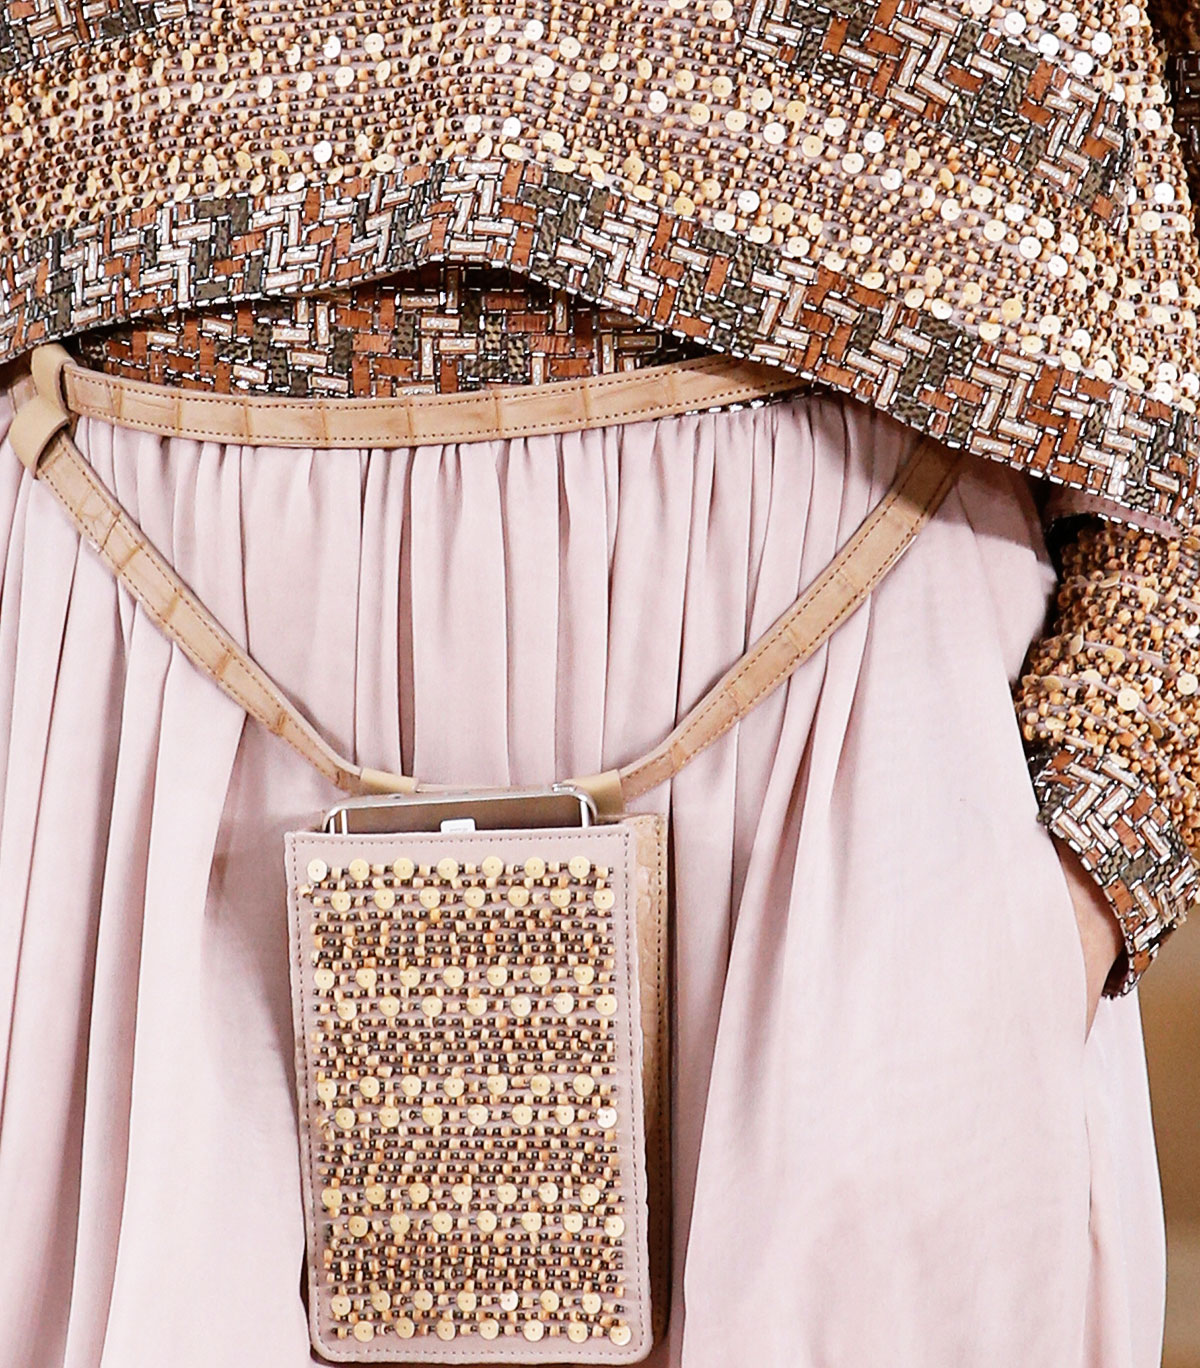 Chanel Spring 2016 Haute Couture sequins beads wood